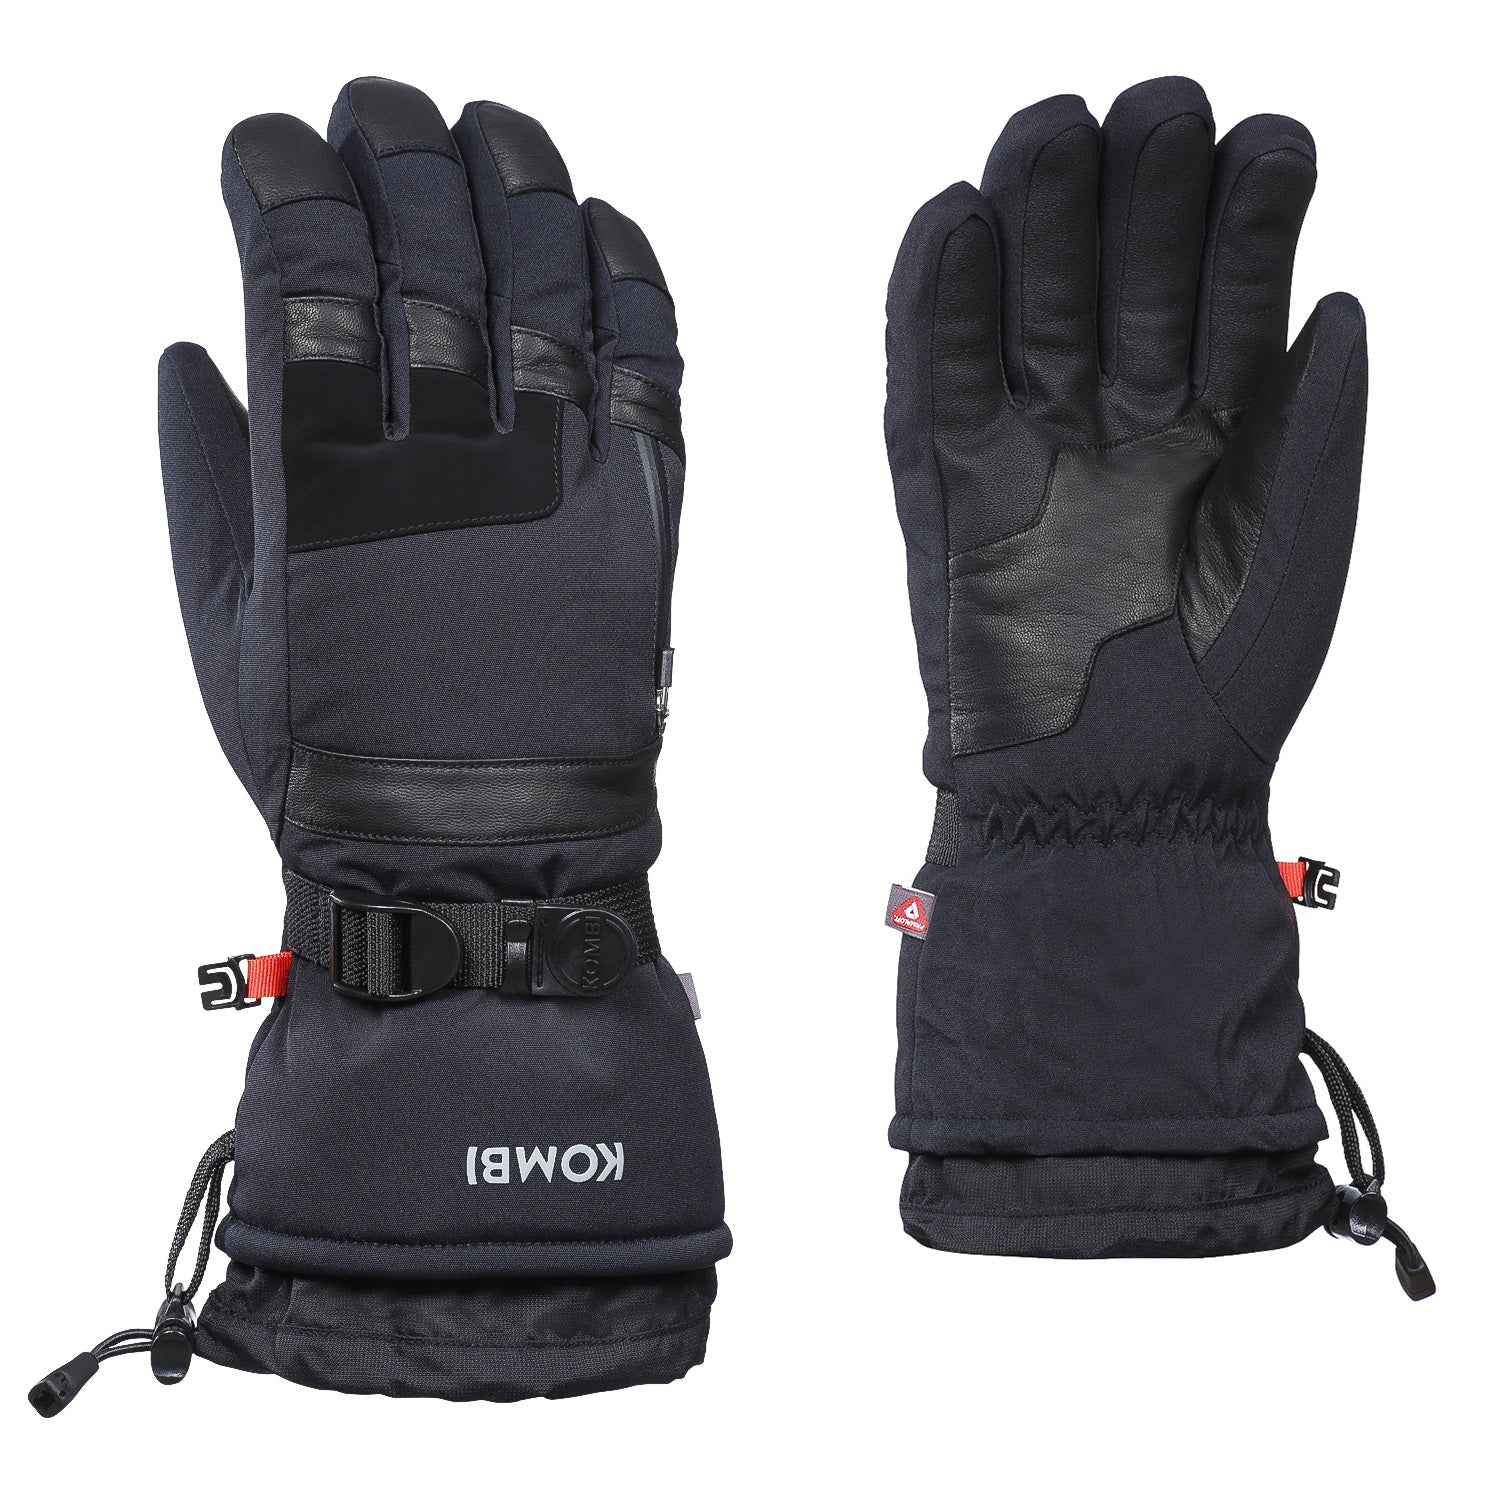 Kombi The Keen Glove - Men's